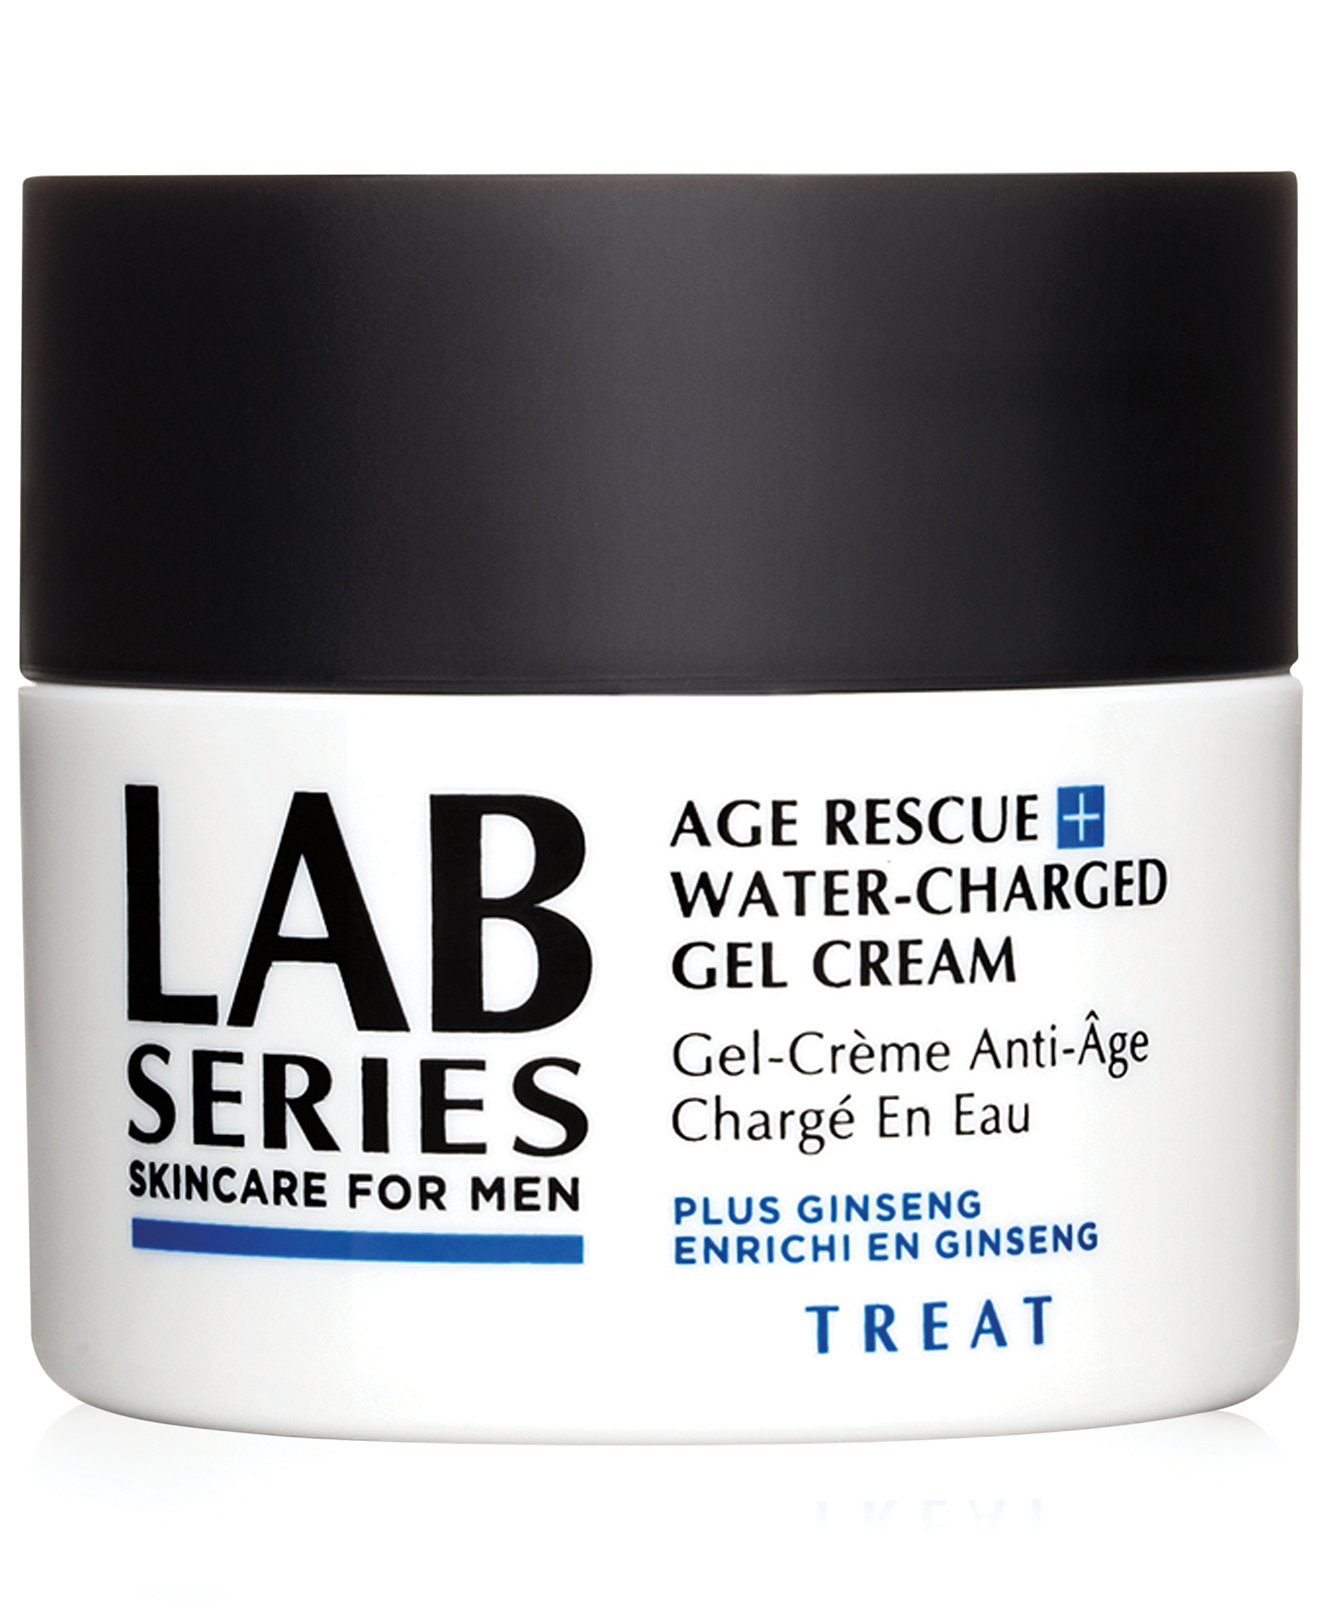 2281216 fpx.tif FREE Lab Series Age Rescue Water Charged Gel Cream Sample